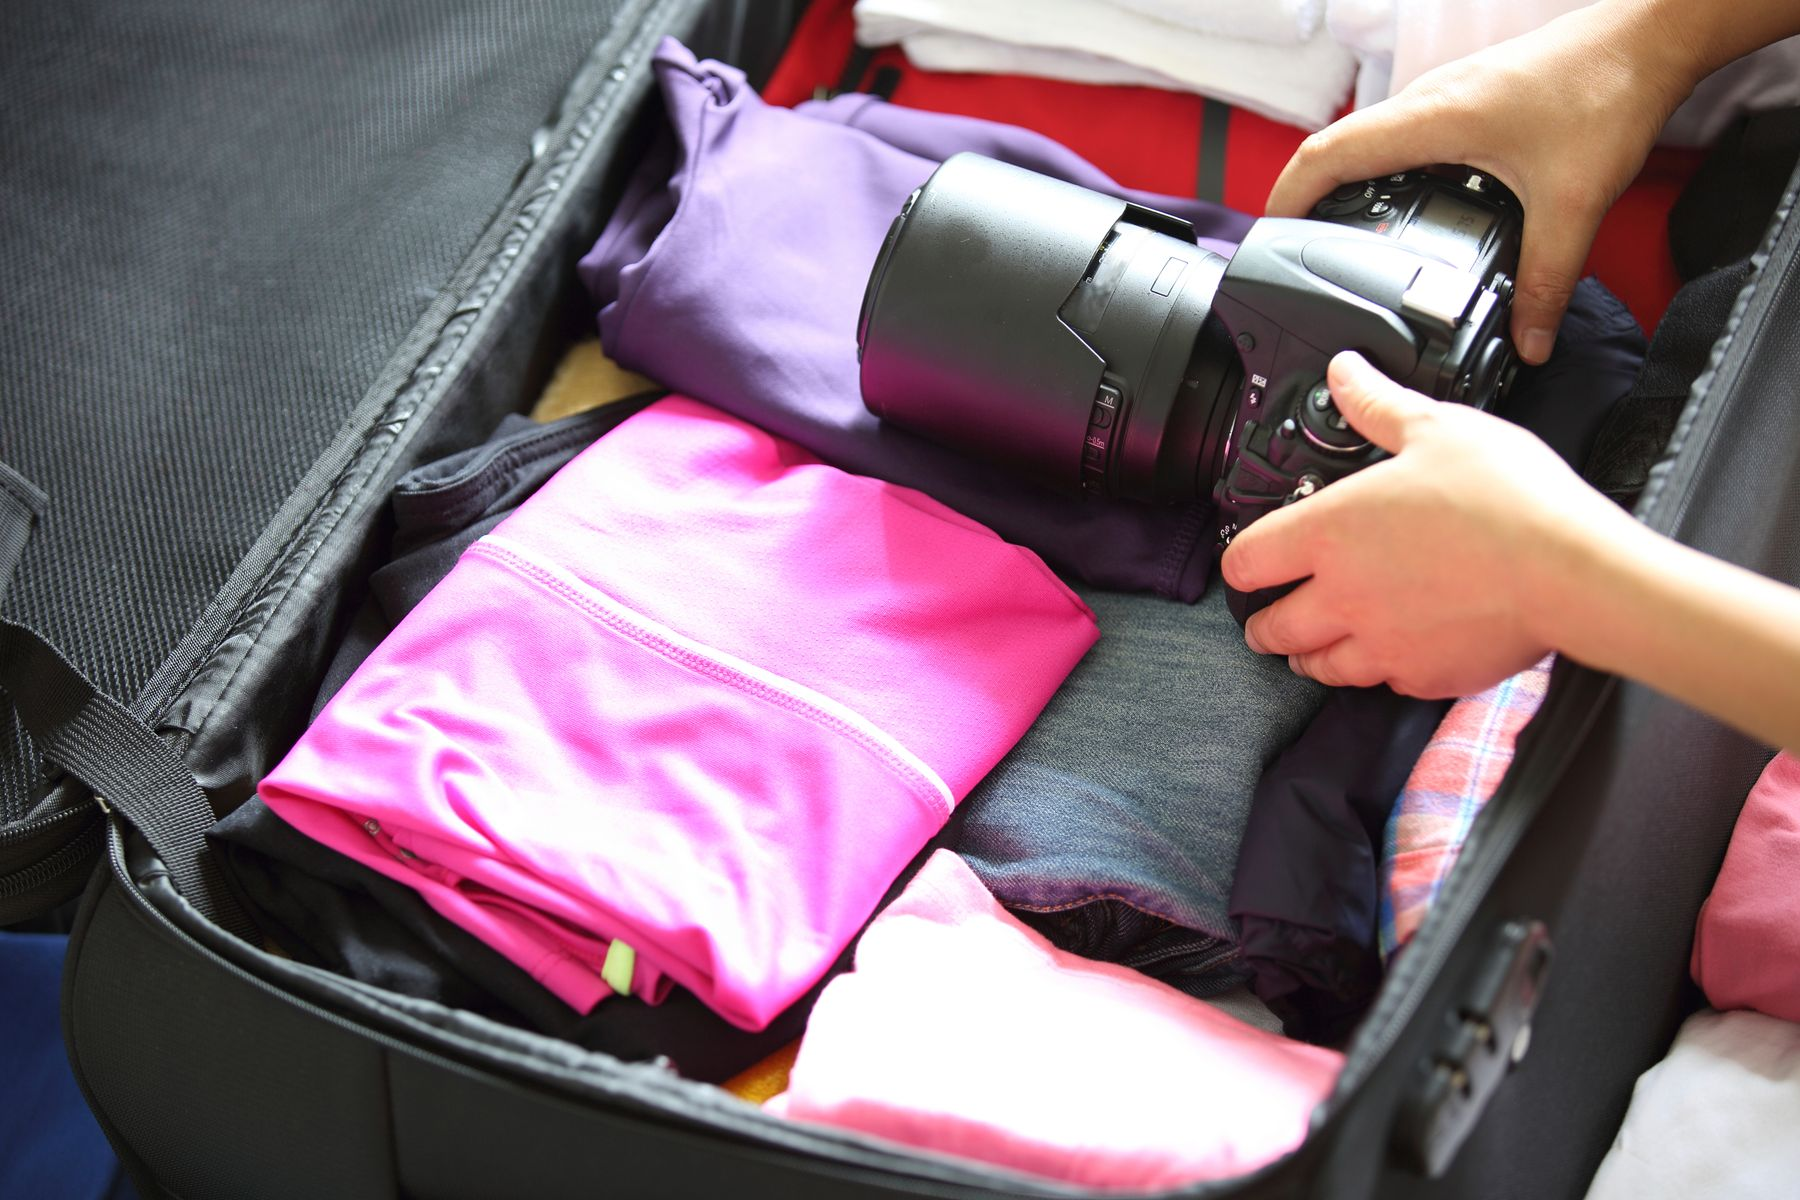 A camera being placed into a suitcase